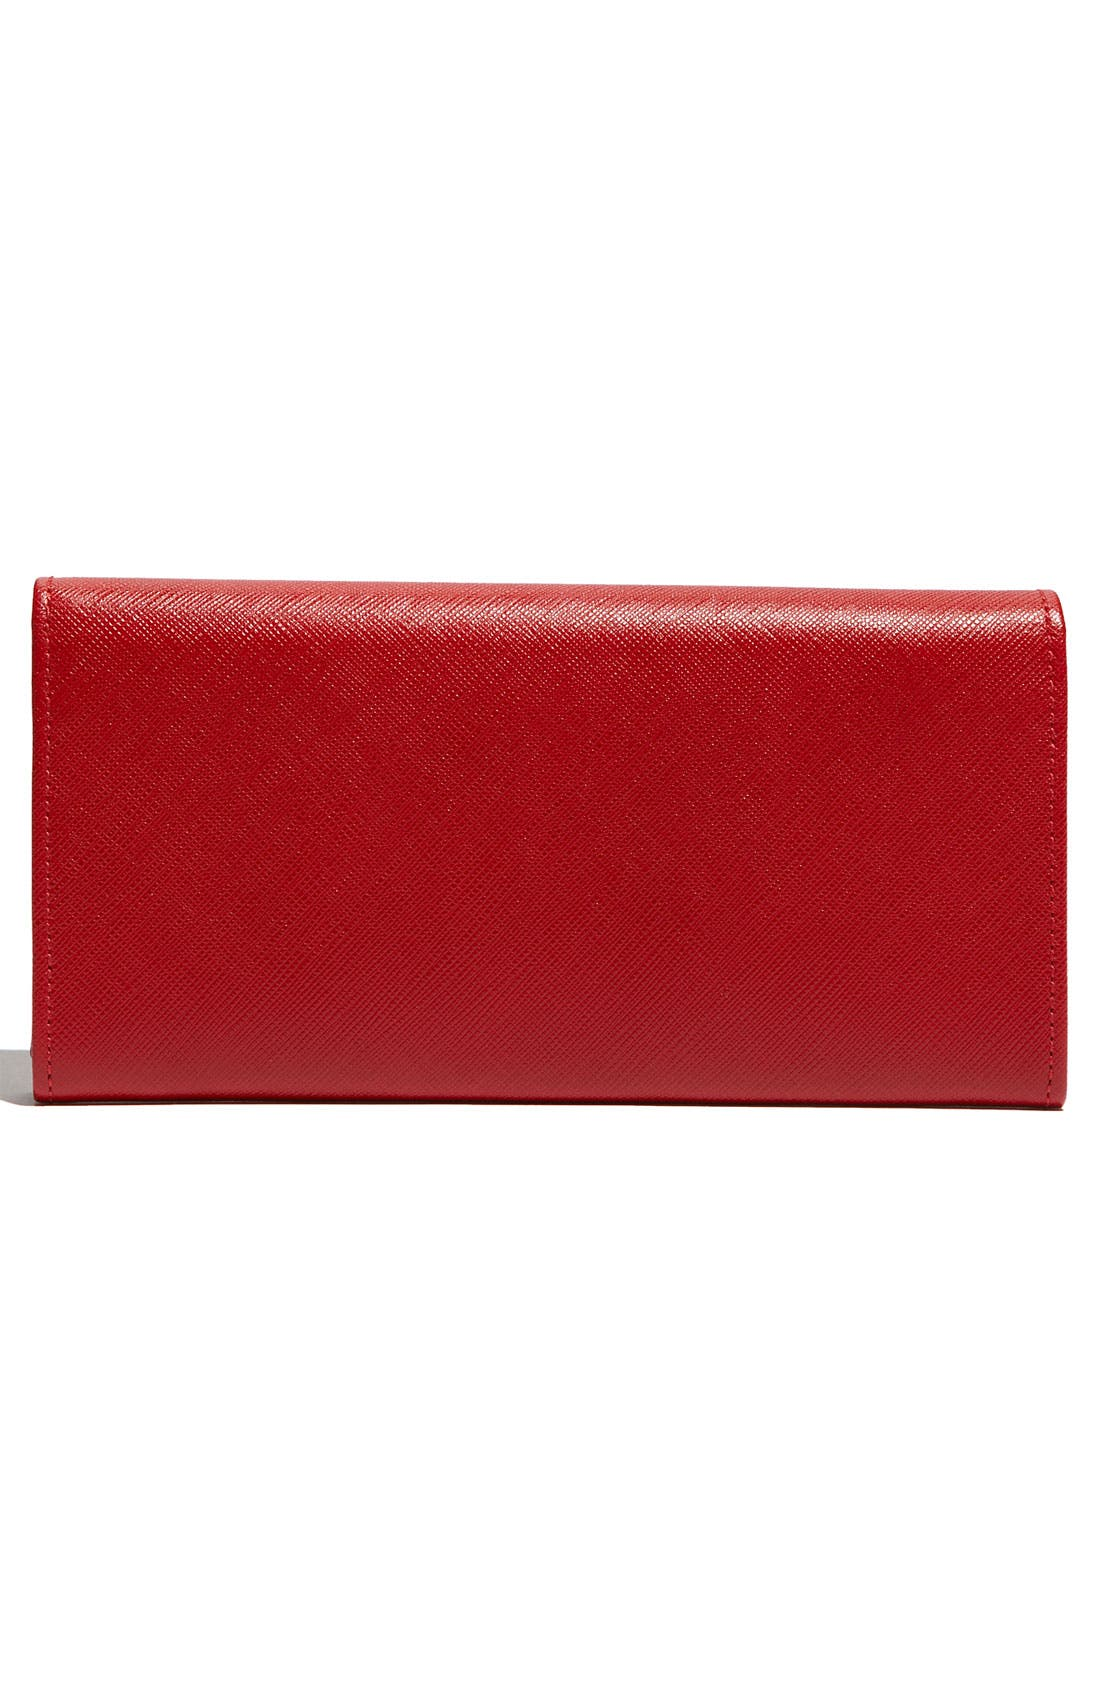 Alternate Image 4  - Salvatore Ferragamo 'Gancini Icona' Saffiano Leather Wallet